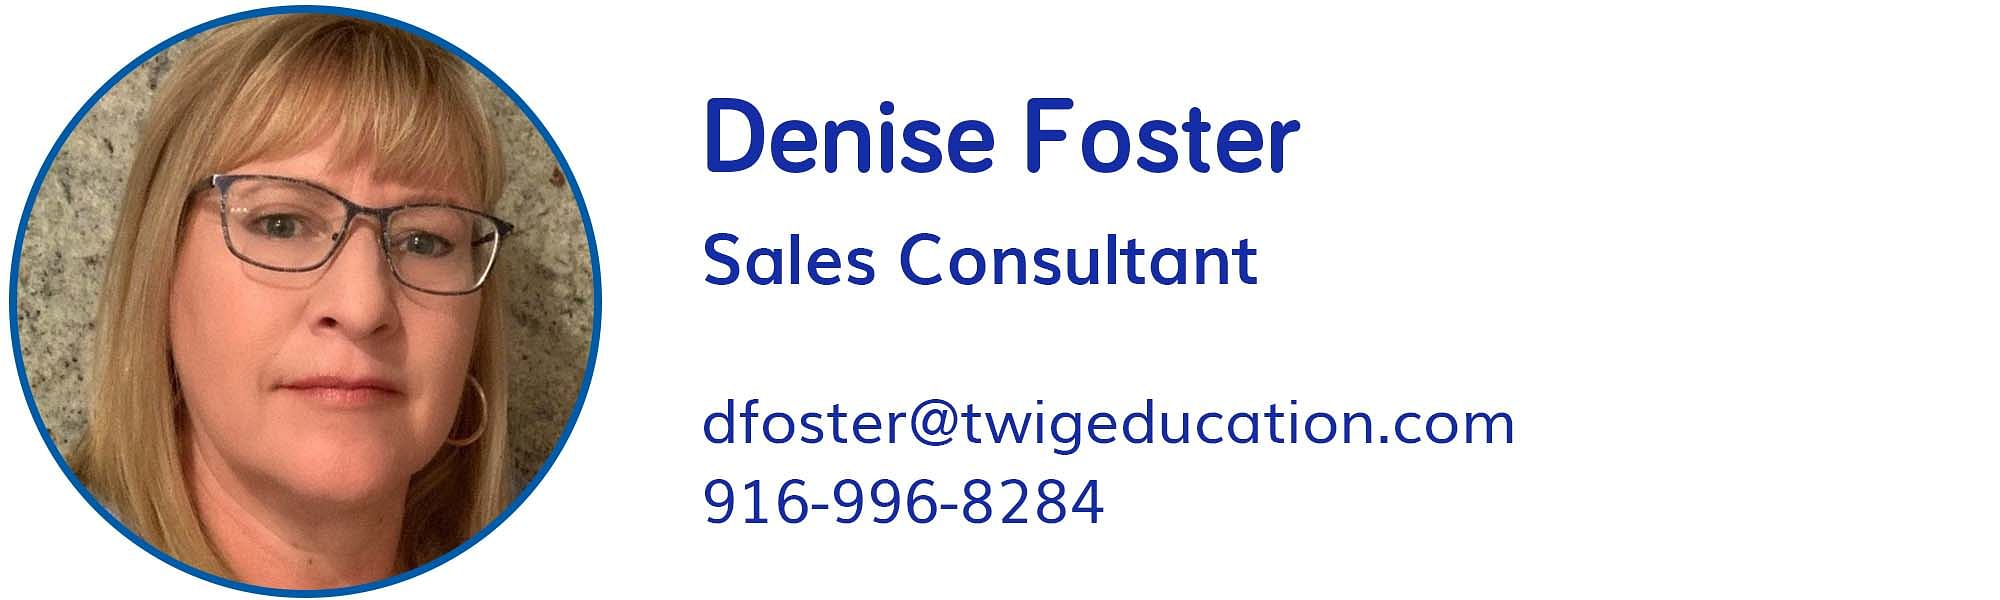 Denise Foster, dfoster@twigeducation.com, 916-996-8284